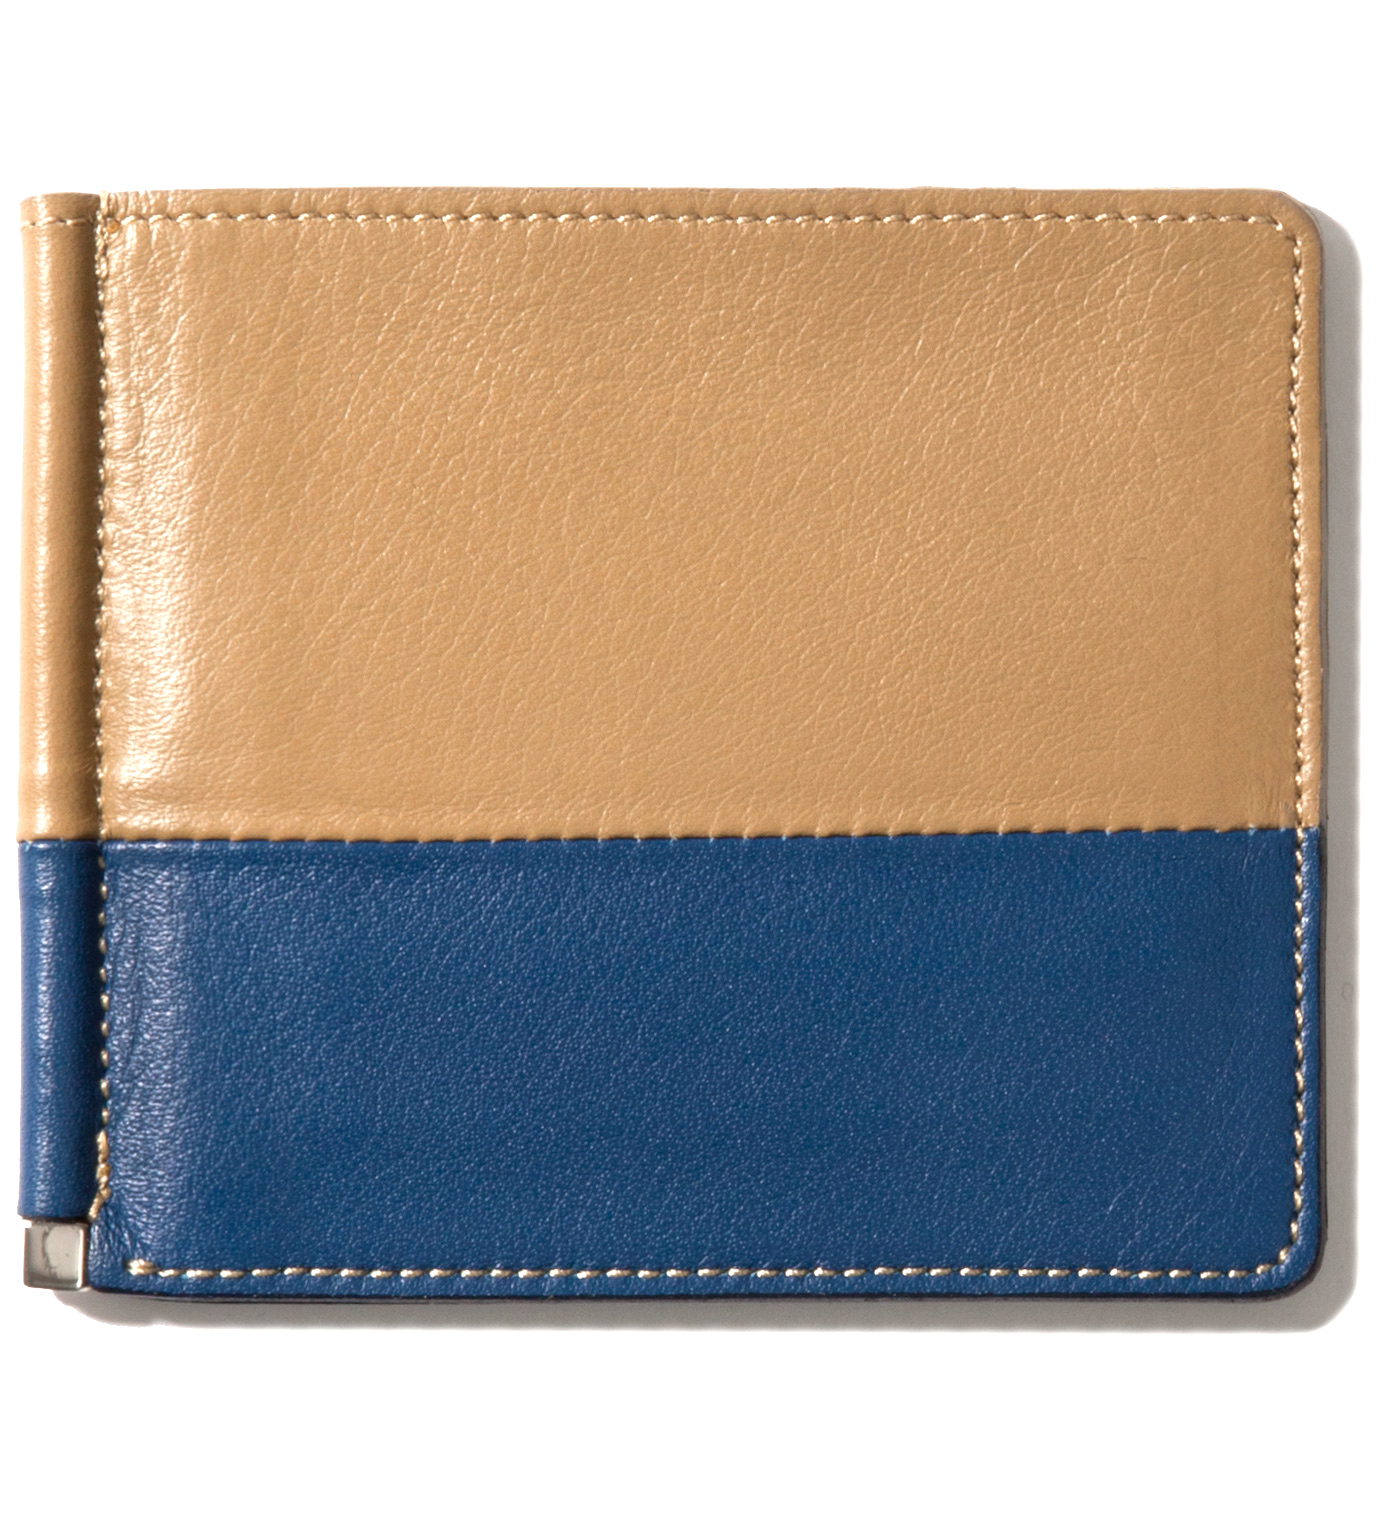 IMIND Beige/Navy Card Case & Money Clip